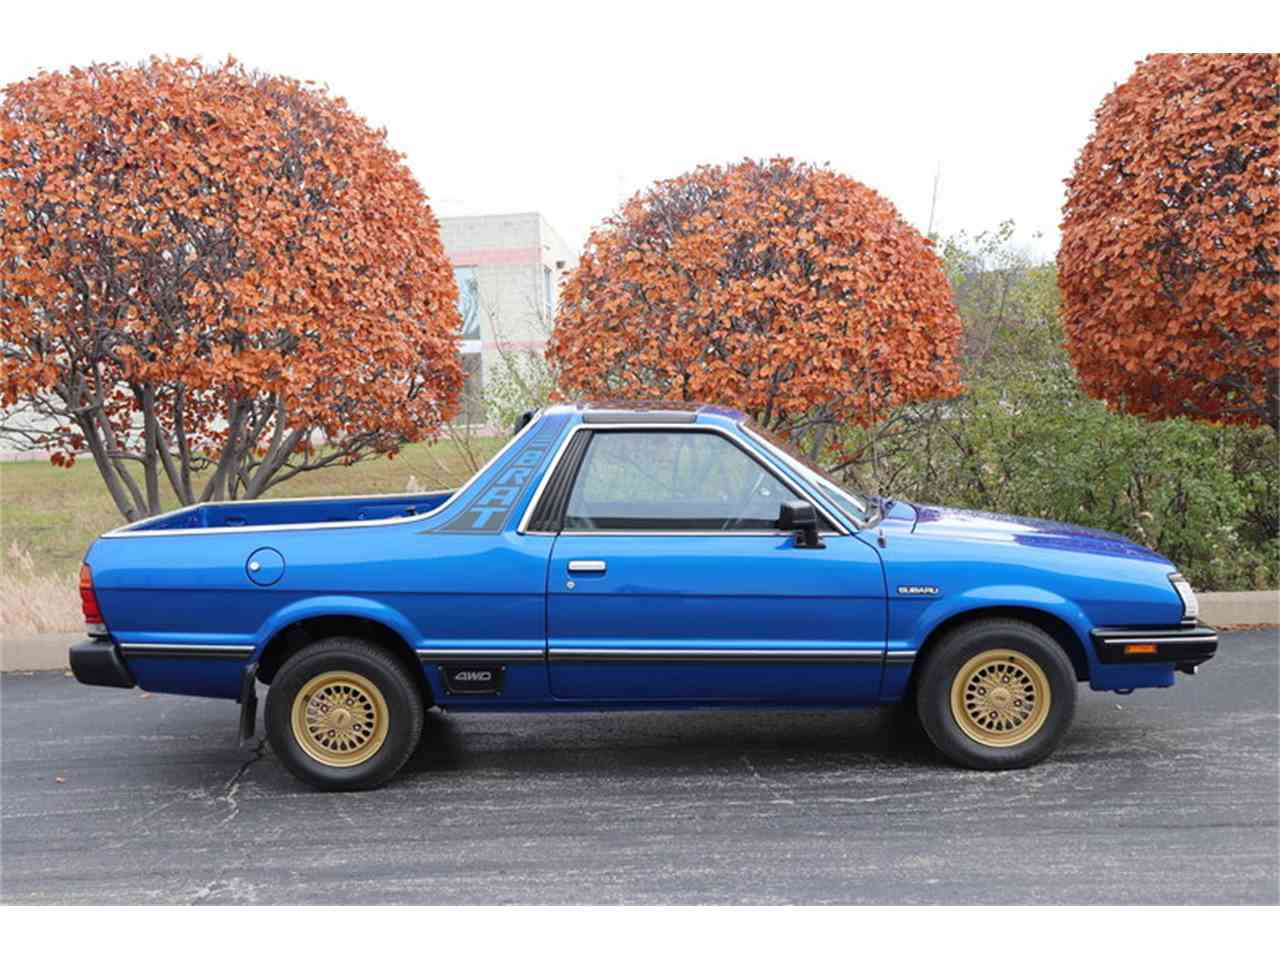 Large Picture of '83 Subaru Brat - $14,900.00 Offered by Midwest Car Exchange - M4TU